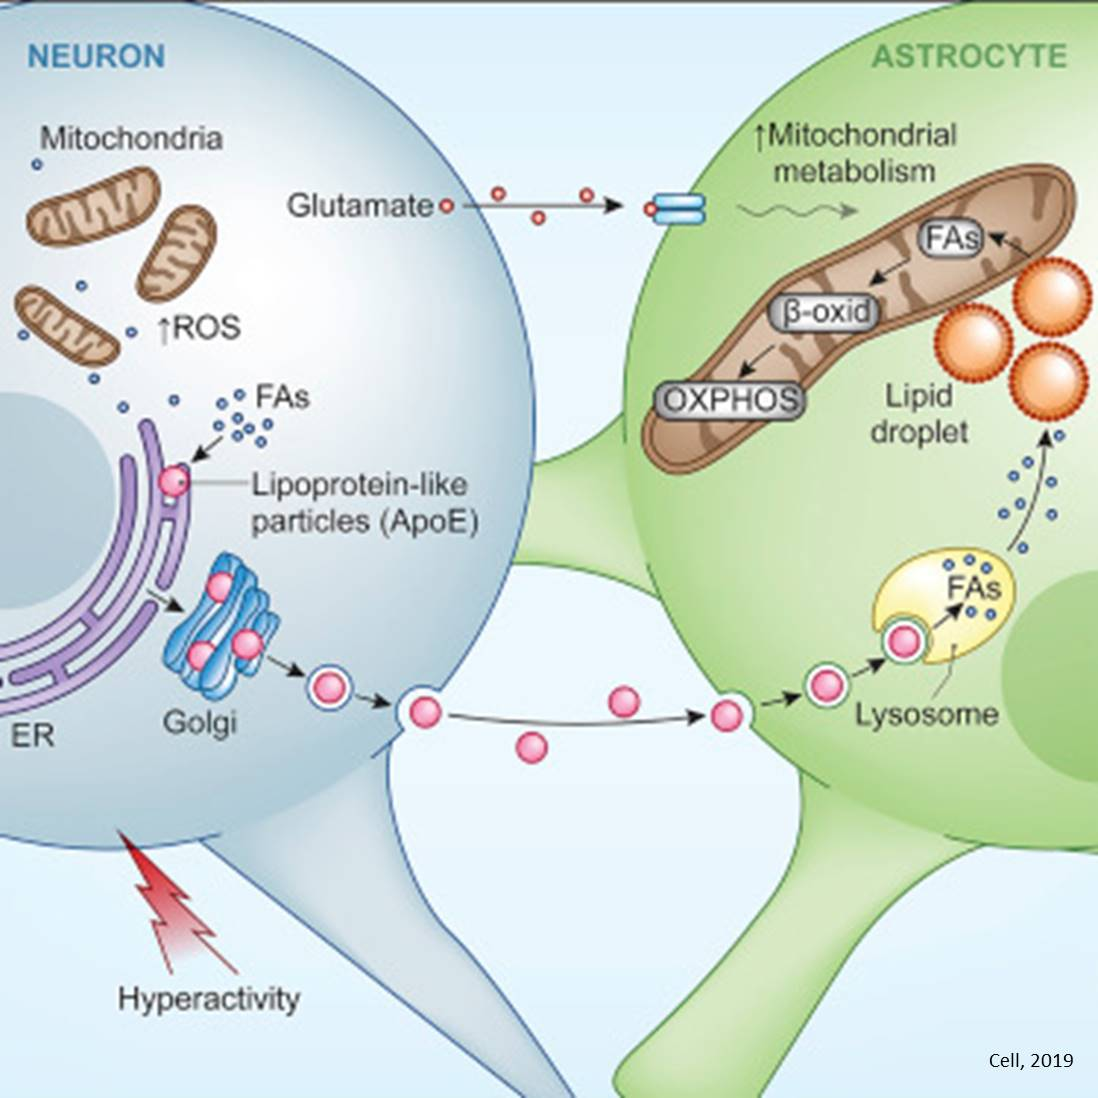 Toxic fatty acid buildup removal by astrocytes to protect neurons